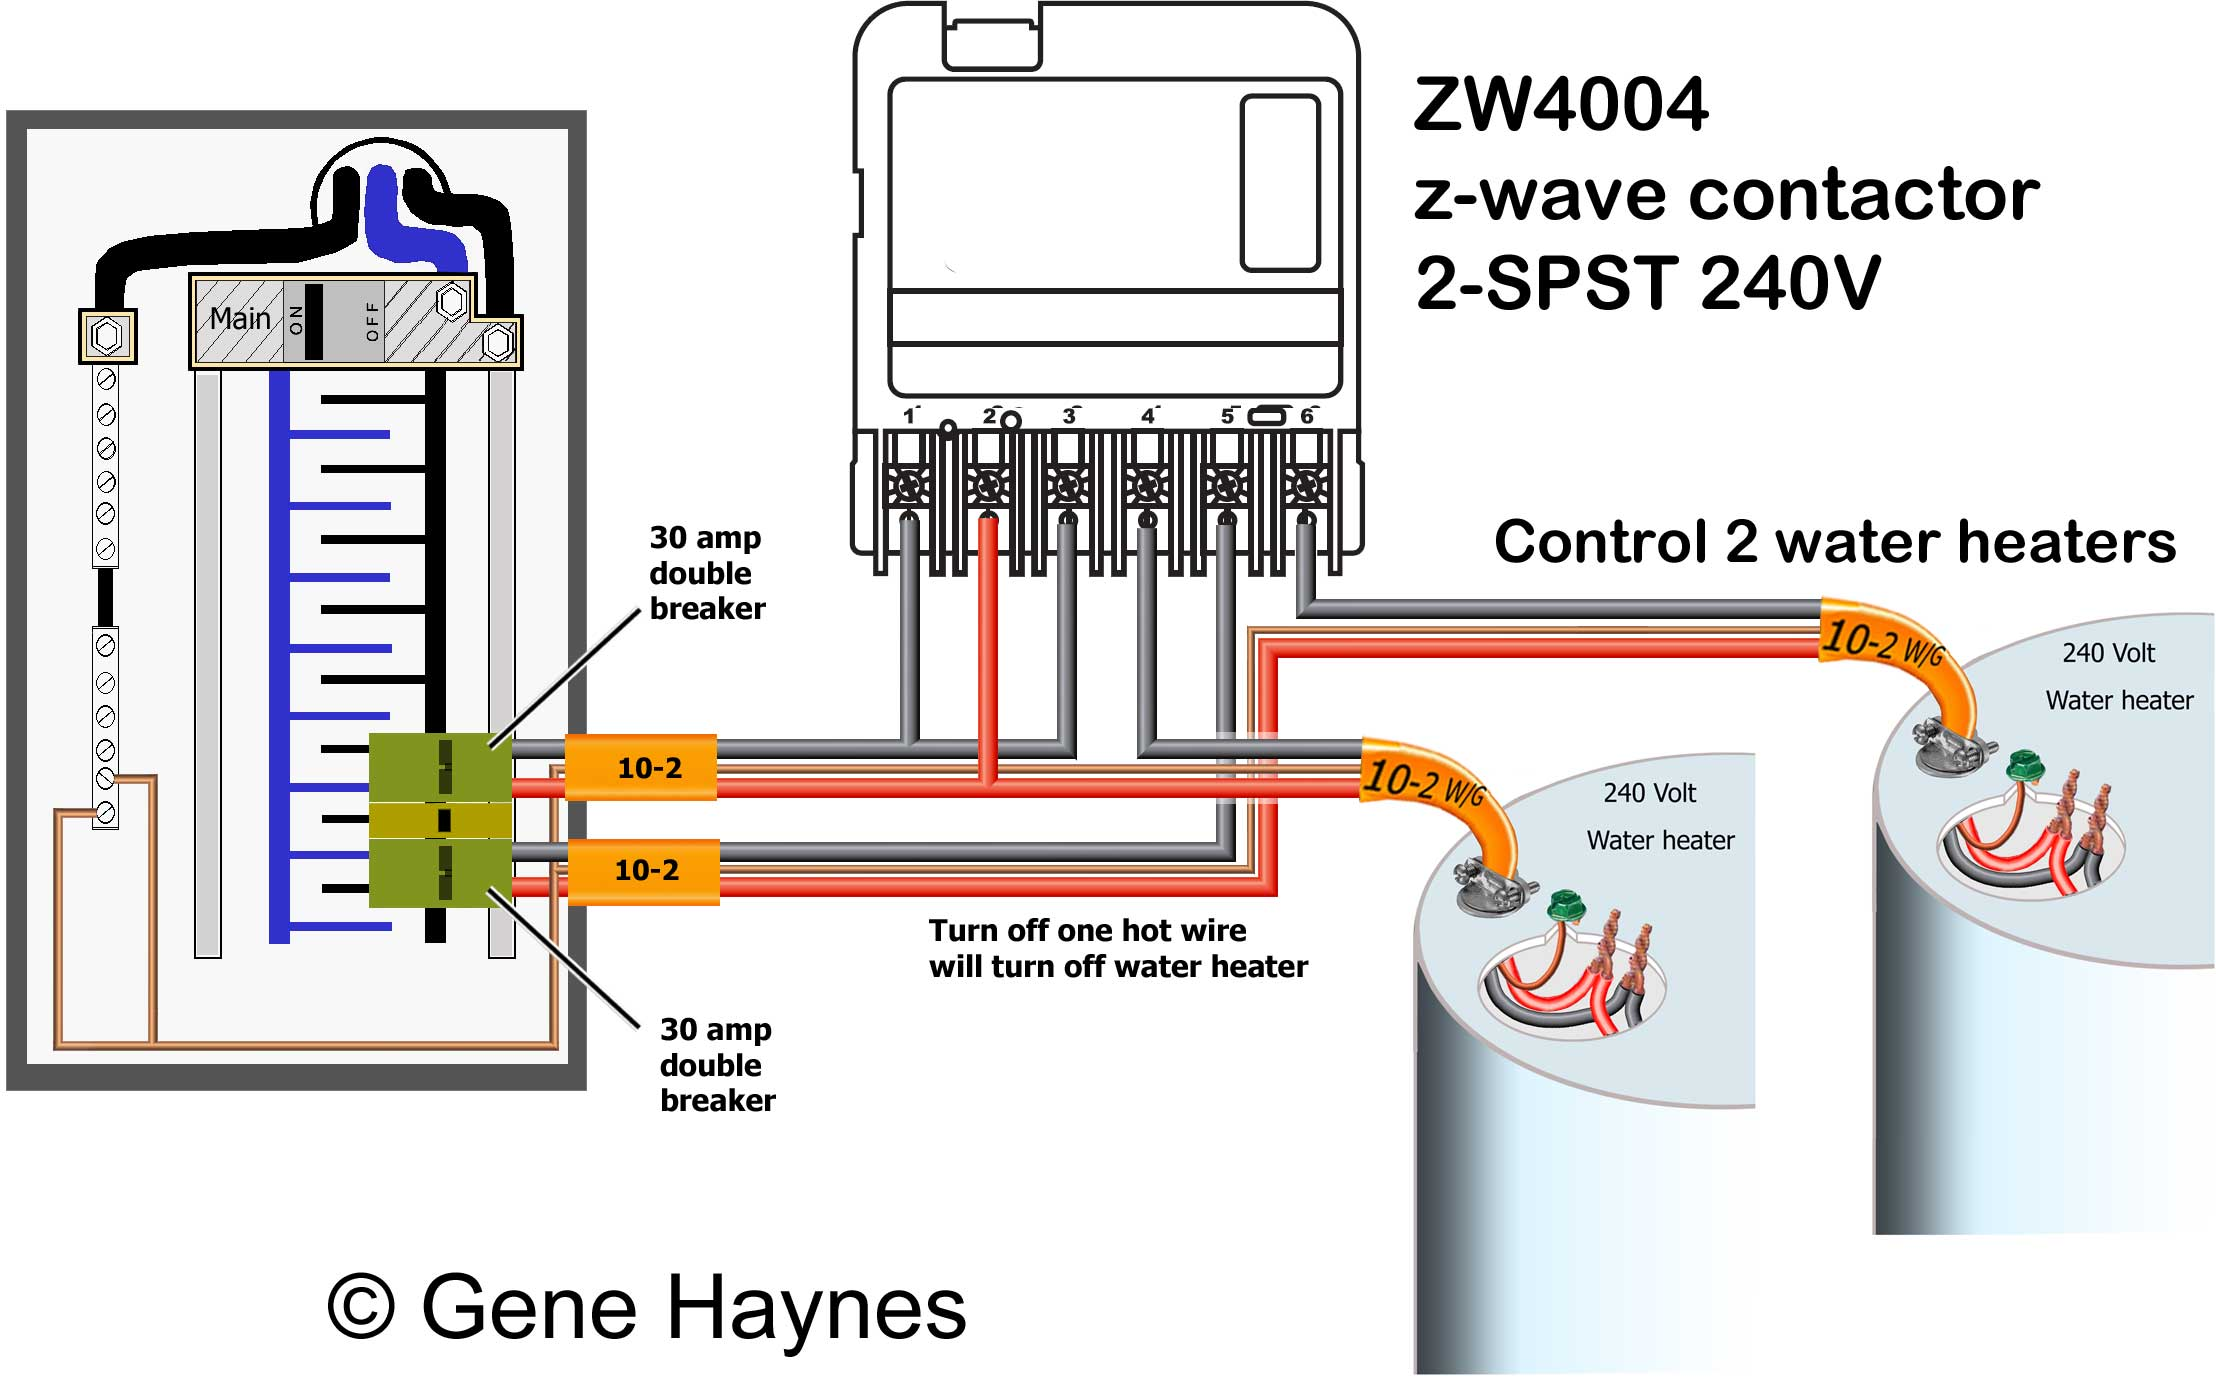 How To Wire Ca3750 Z Wave Contactor Zwave Basics European 220 Wiring Diagrams Home Turn Off Each Load By Turning 1 Hot On Circuit Select 240volt Operation Choose 2xspst Operate Water Heater With Different Schedule